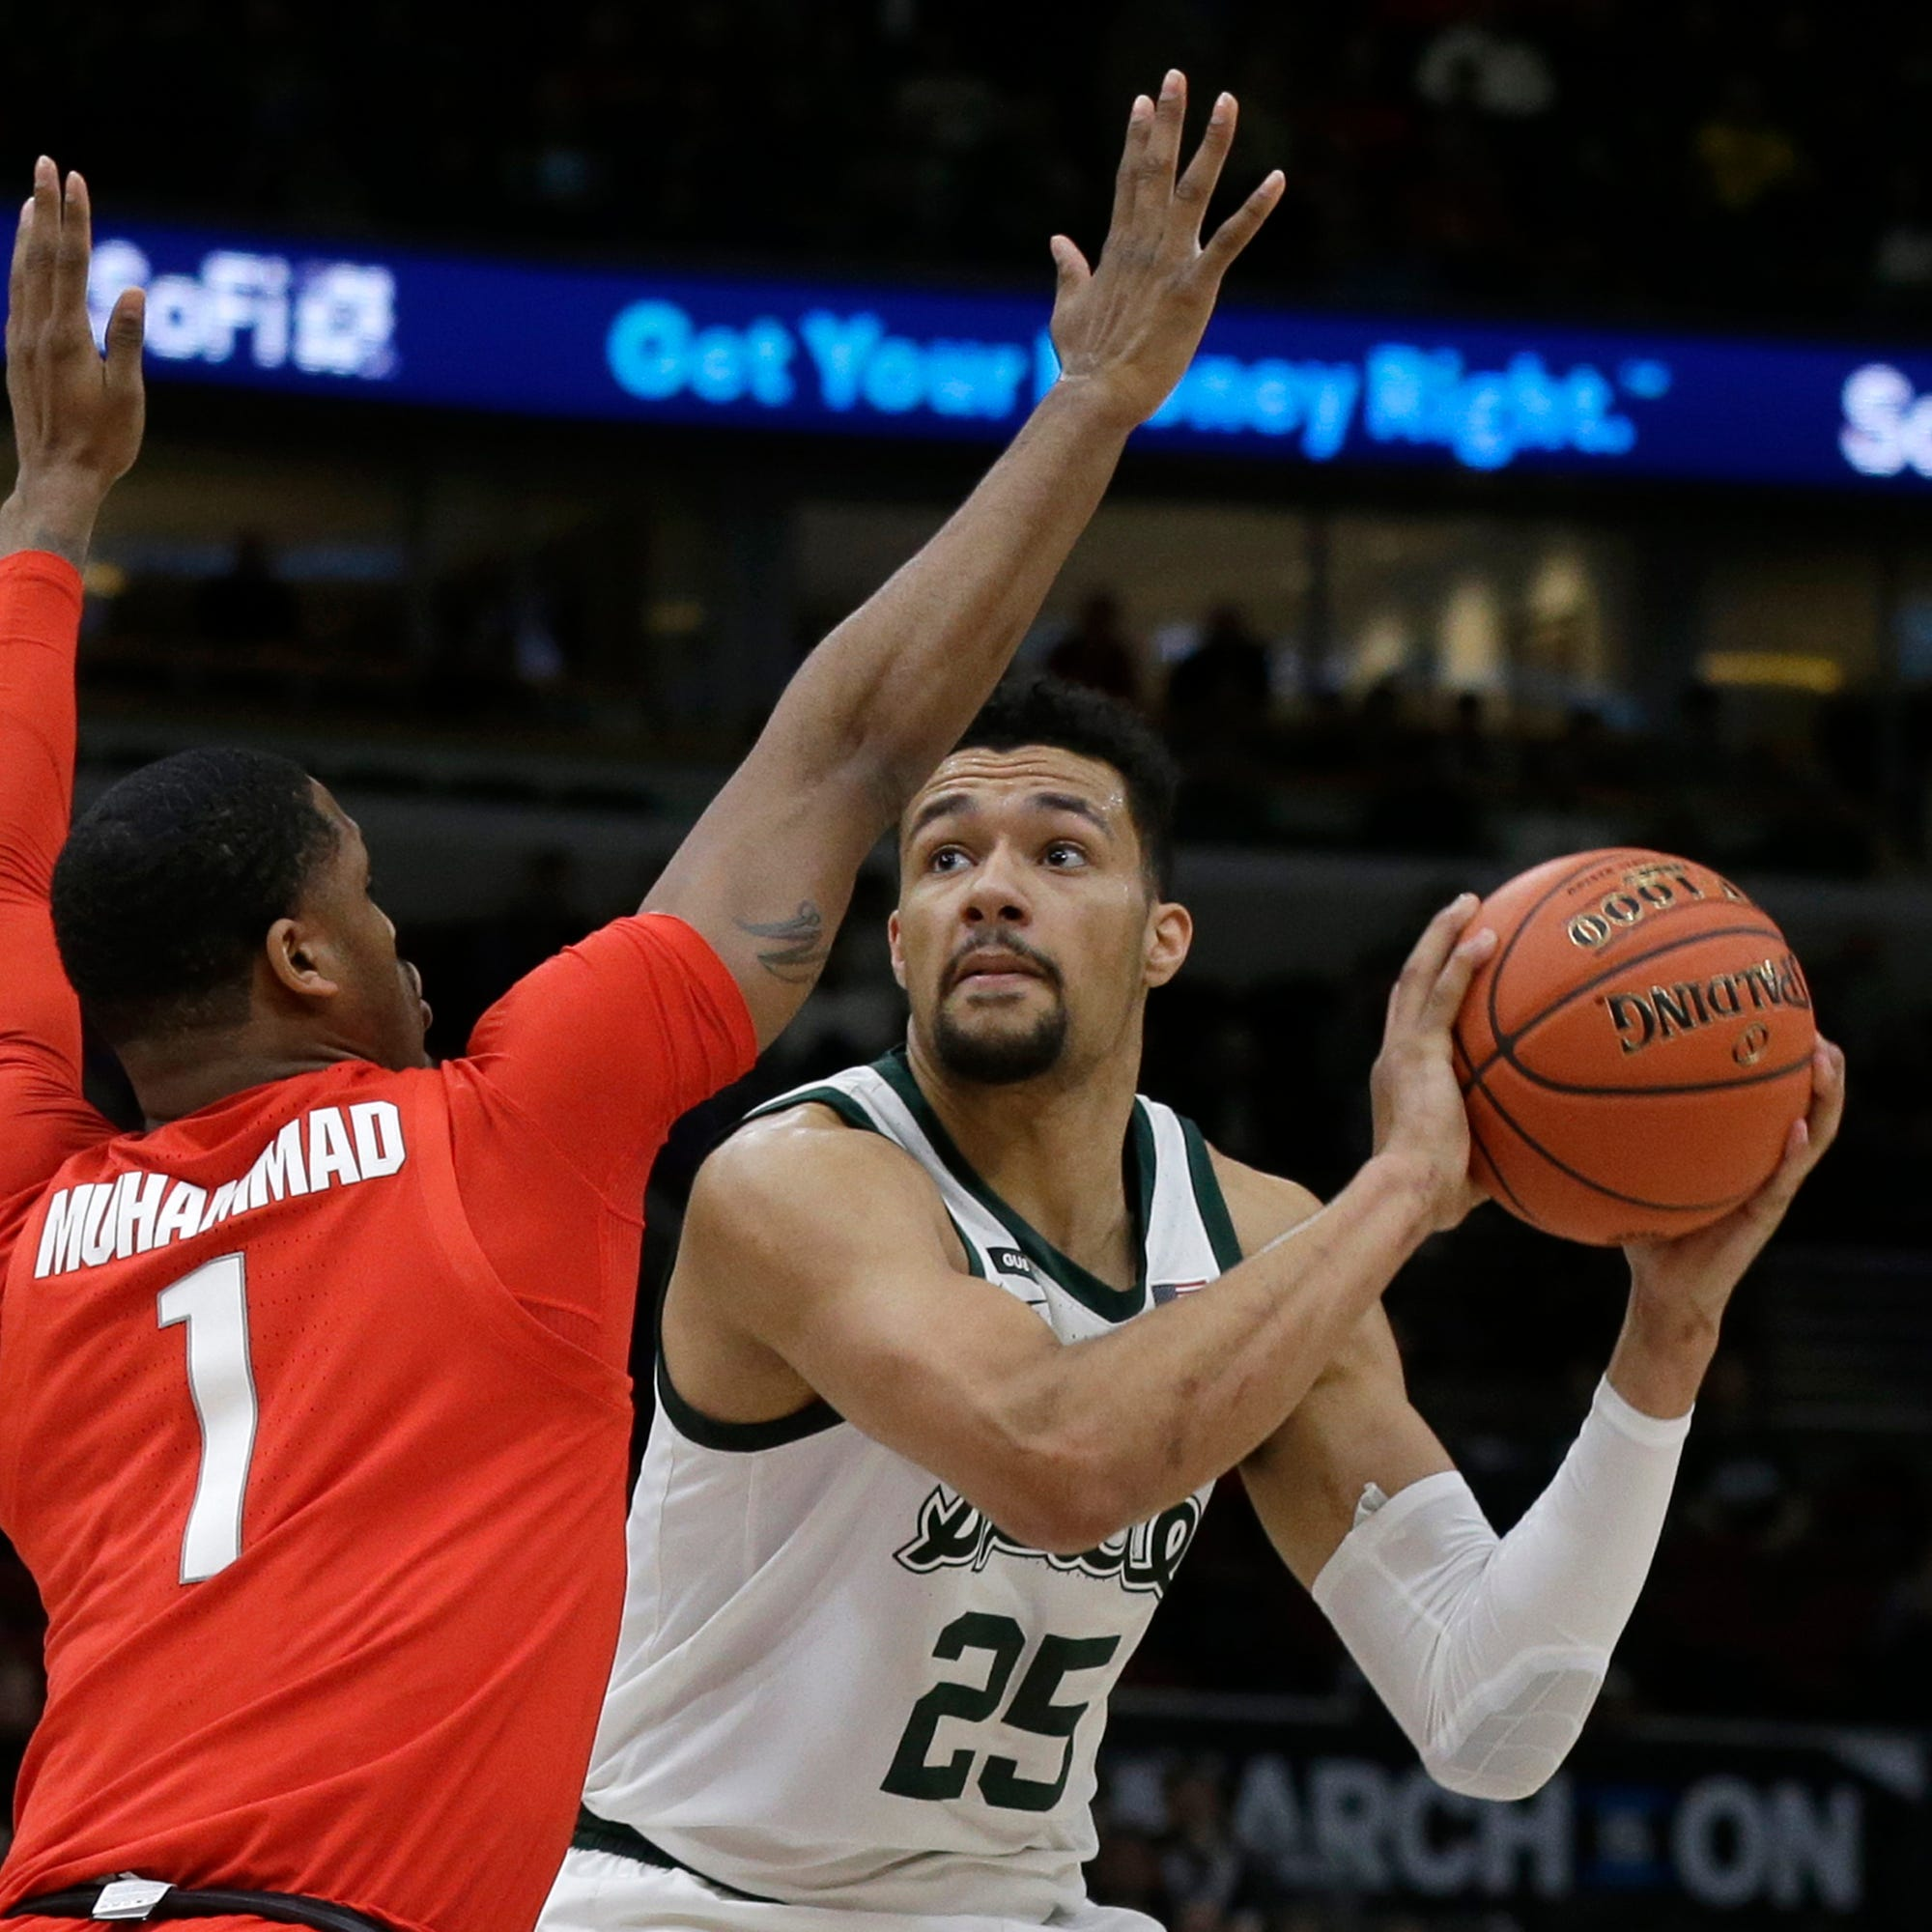 Live updates: Fast-paced game favoring MSU over WISC early on